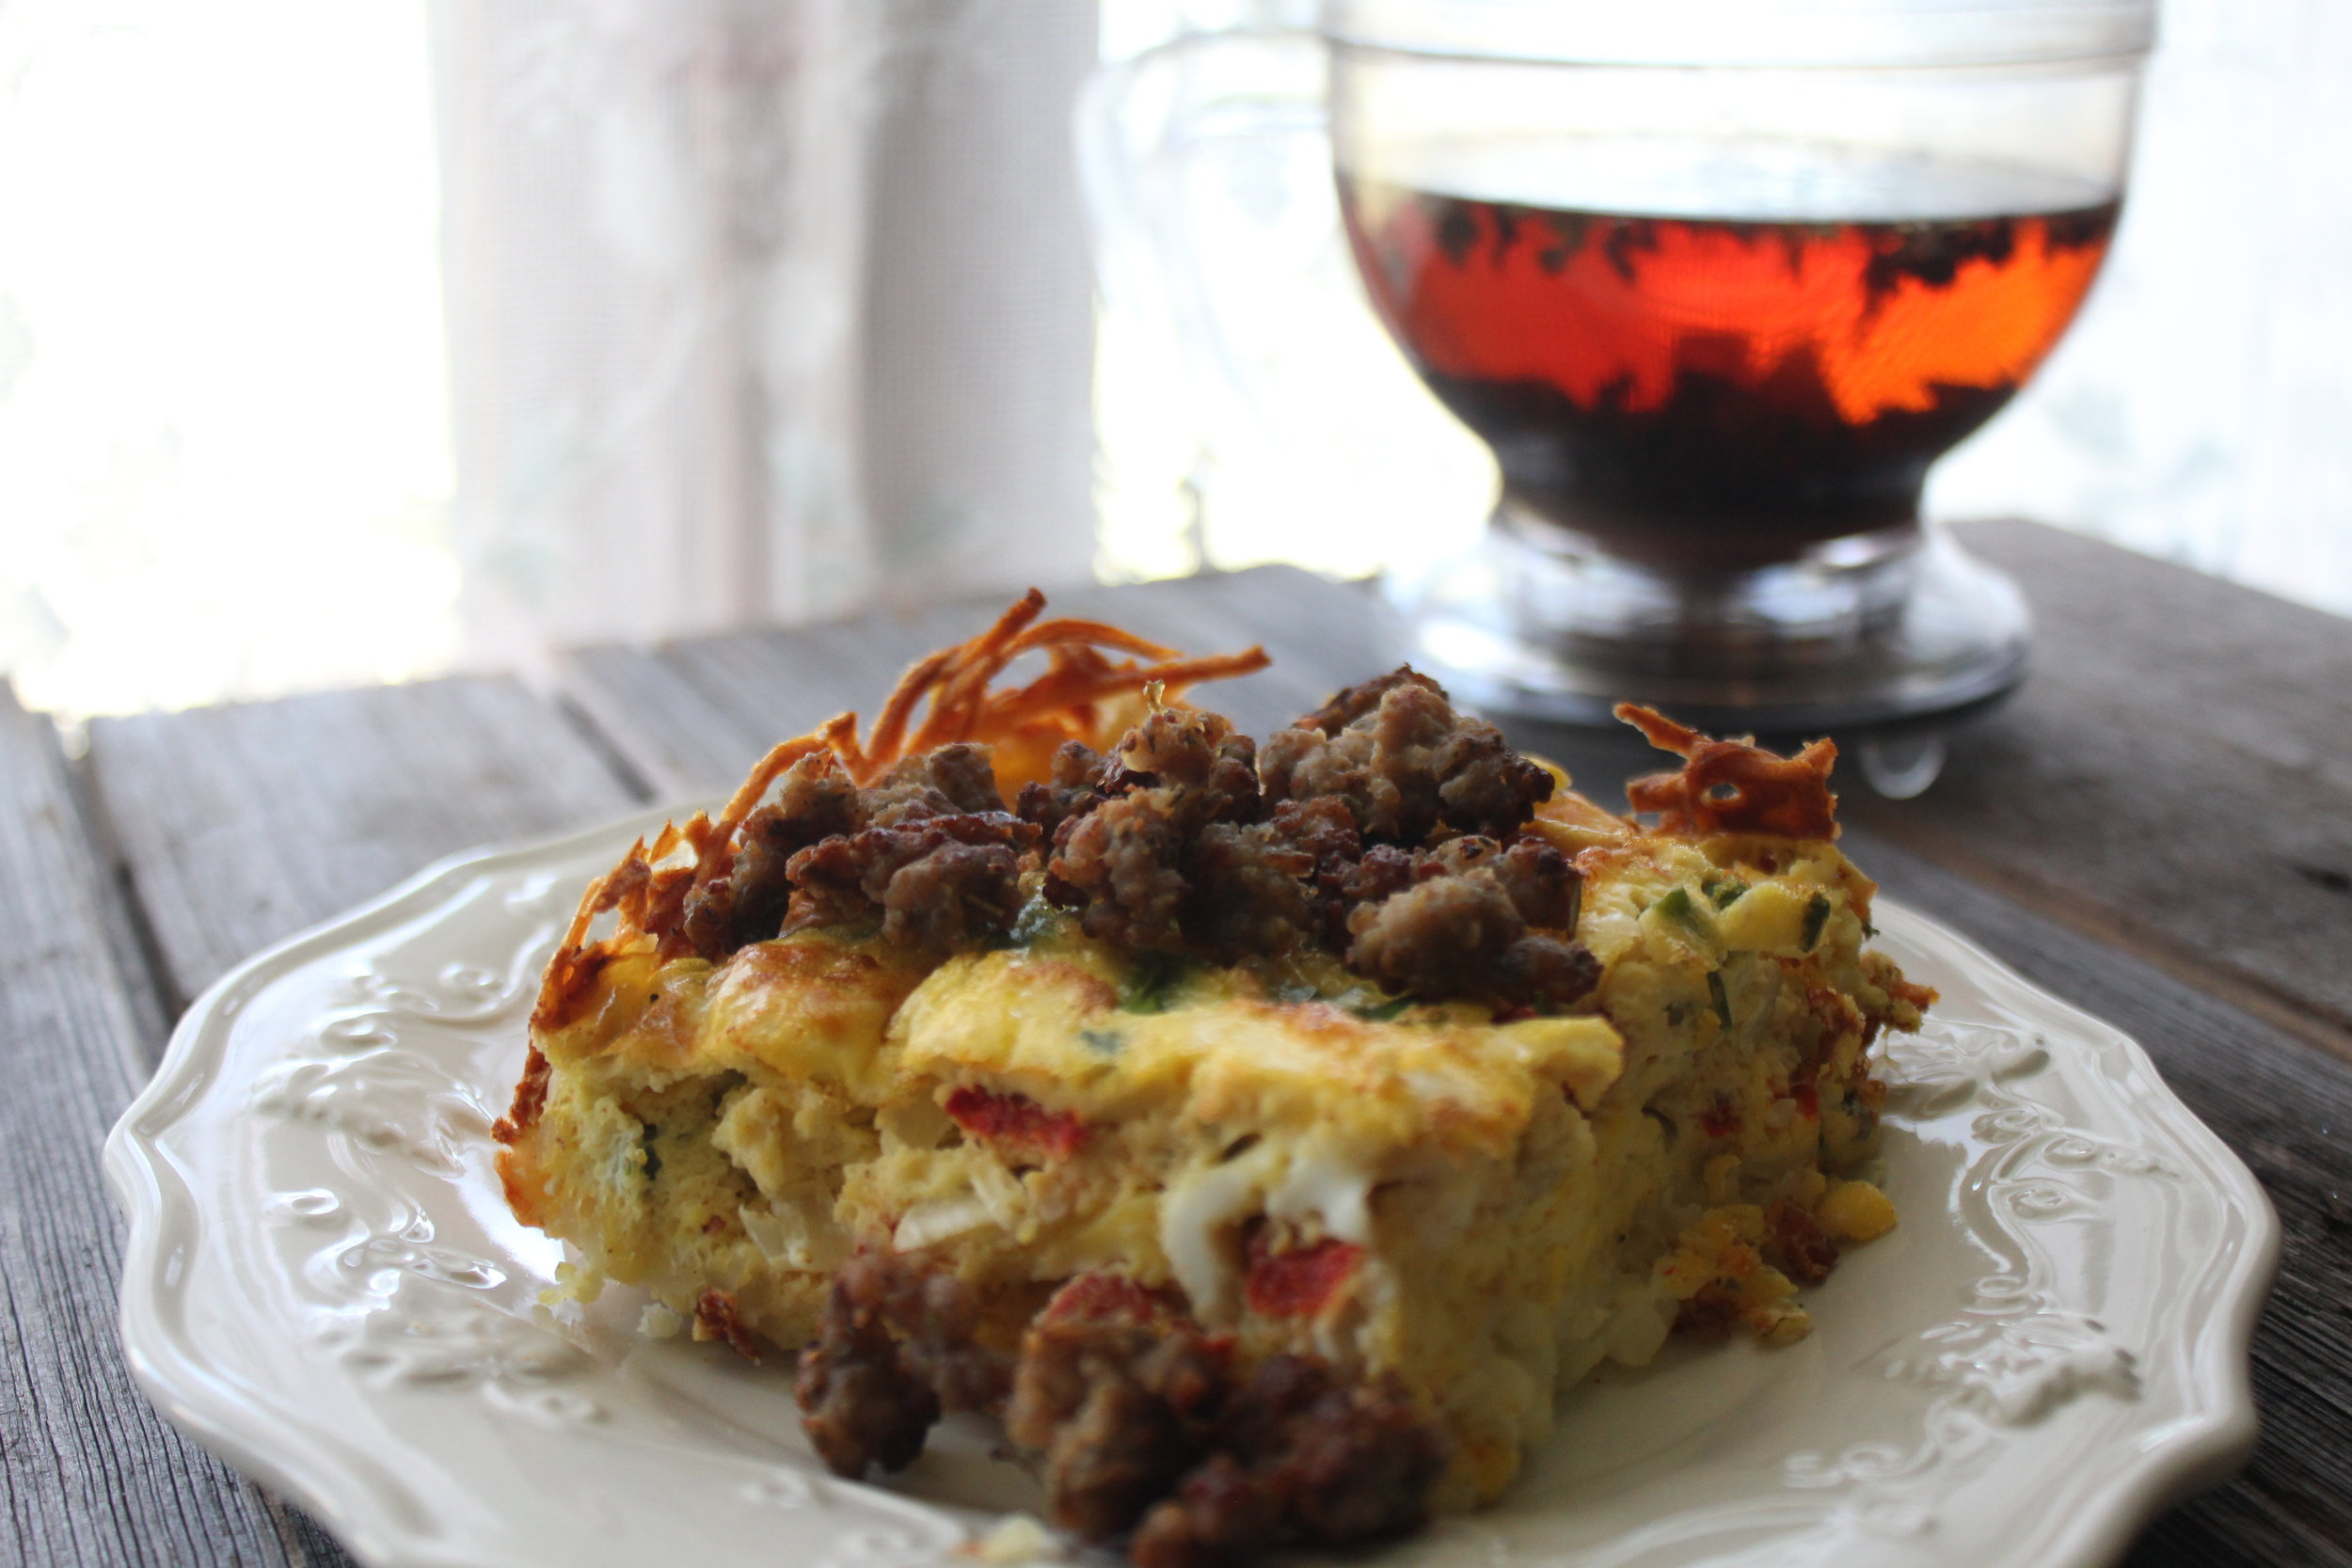 Quiche with a hash brown crust featuring Ky Darling sausage